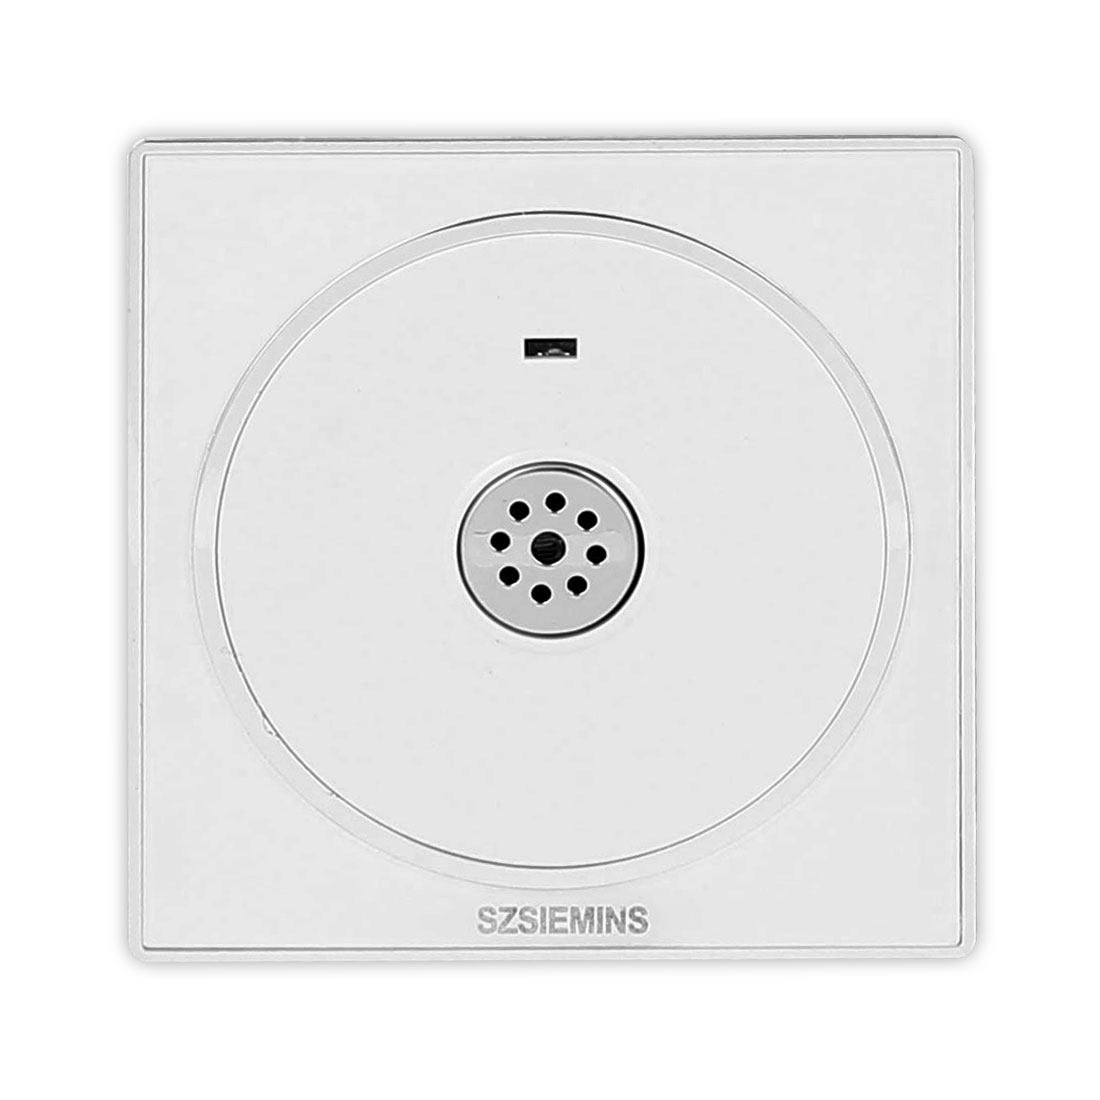 AC 250V Wall Mounted Energy Saving Sound Control Sensor PMMA Time Delay Switch White